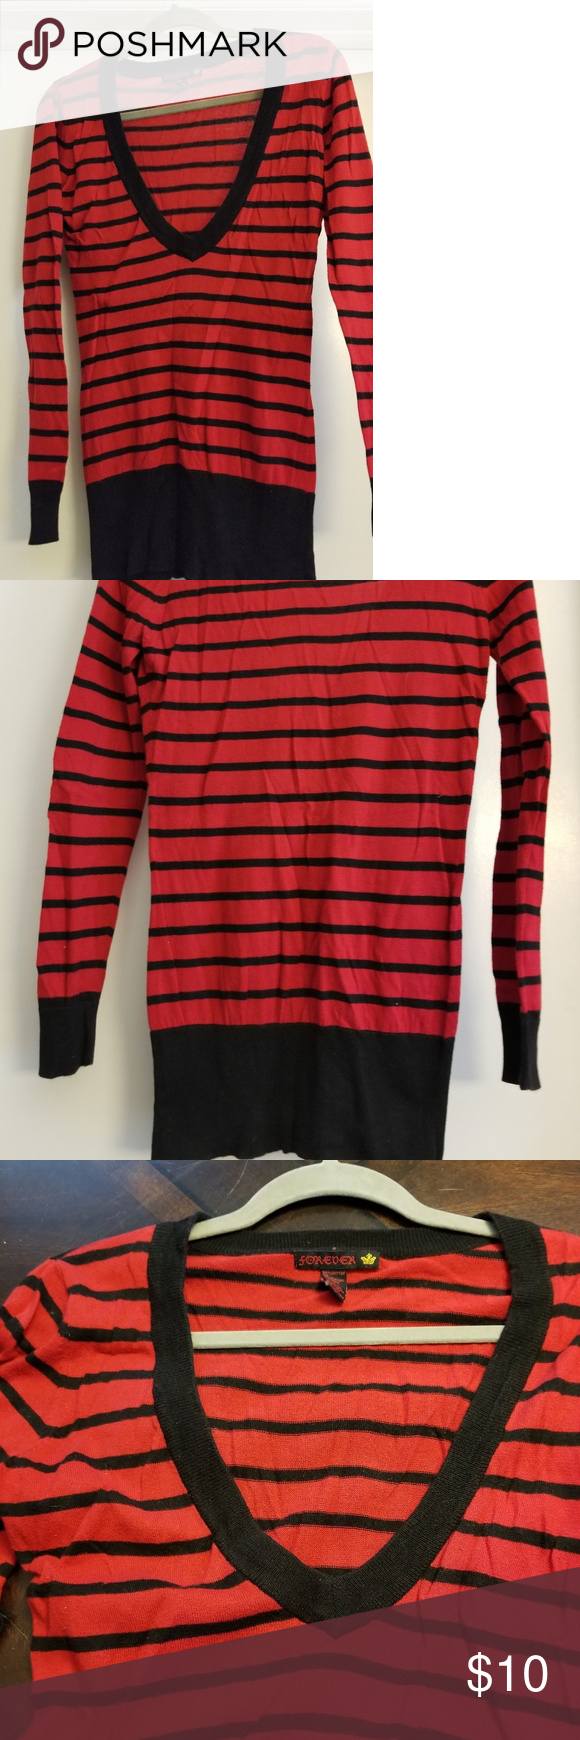 c0ae37ed8cee69 Red & black striped v-neck long sleeve sweater Tunic length, deep v ...